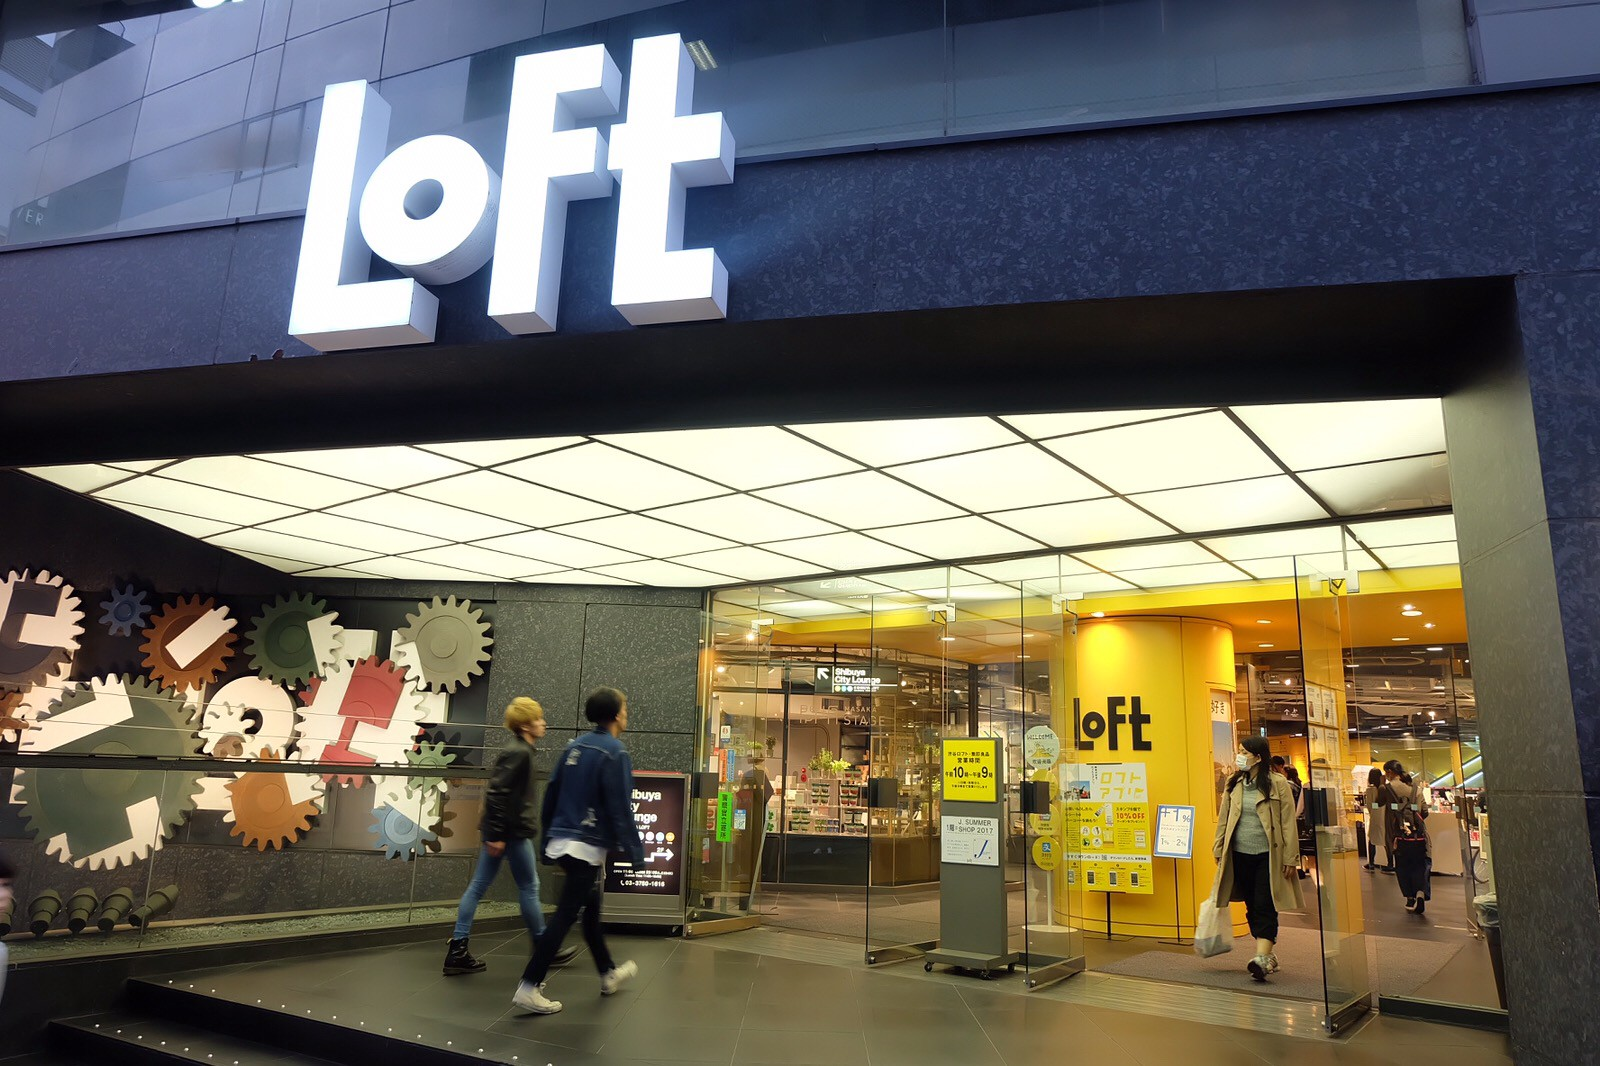 LOFT : Coolest Store in Shibuya Tokyo